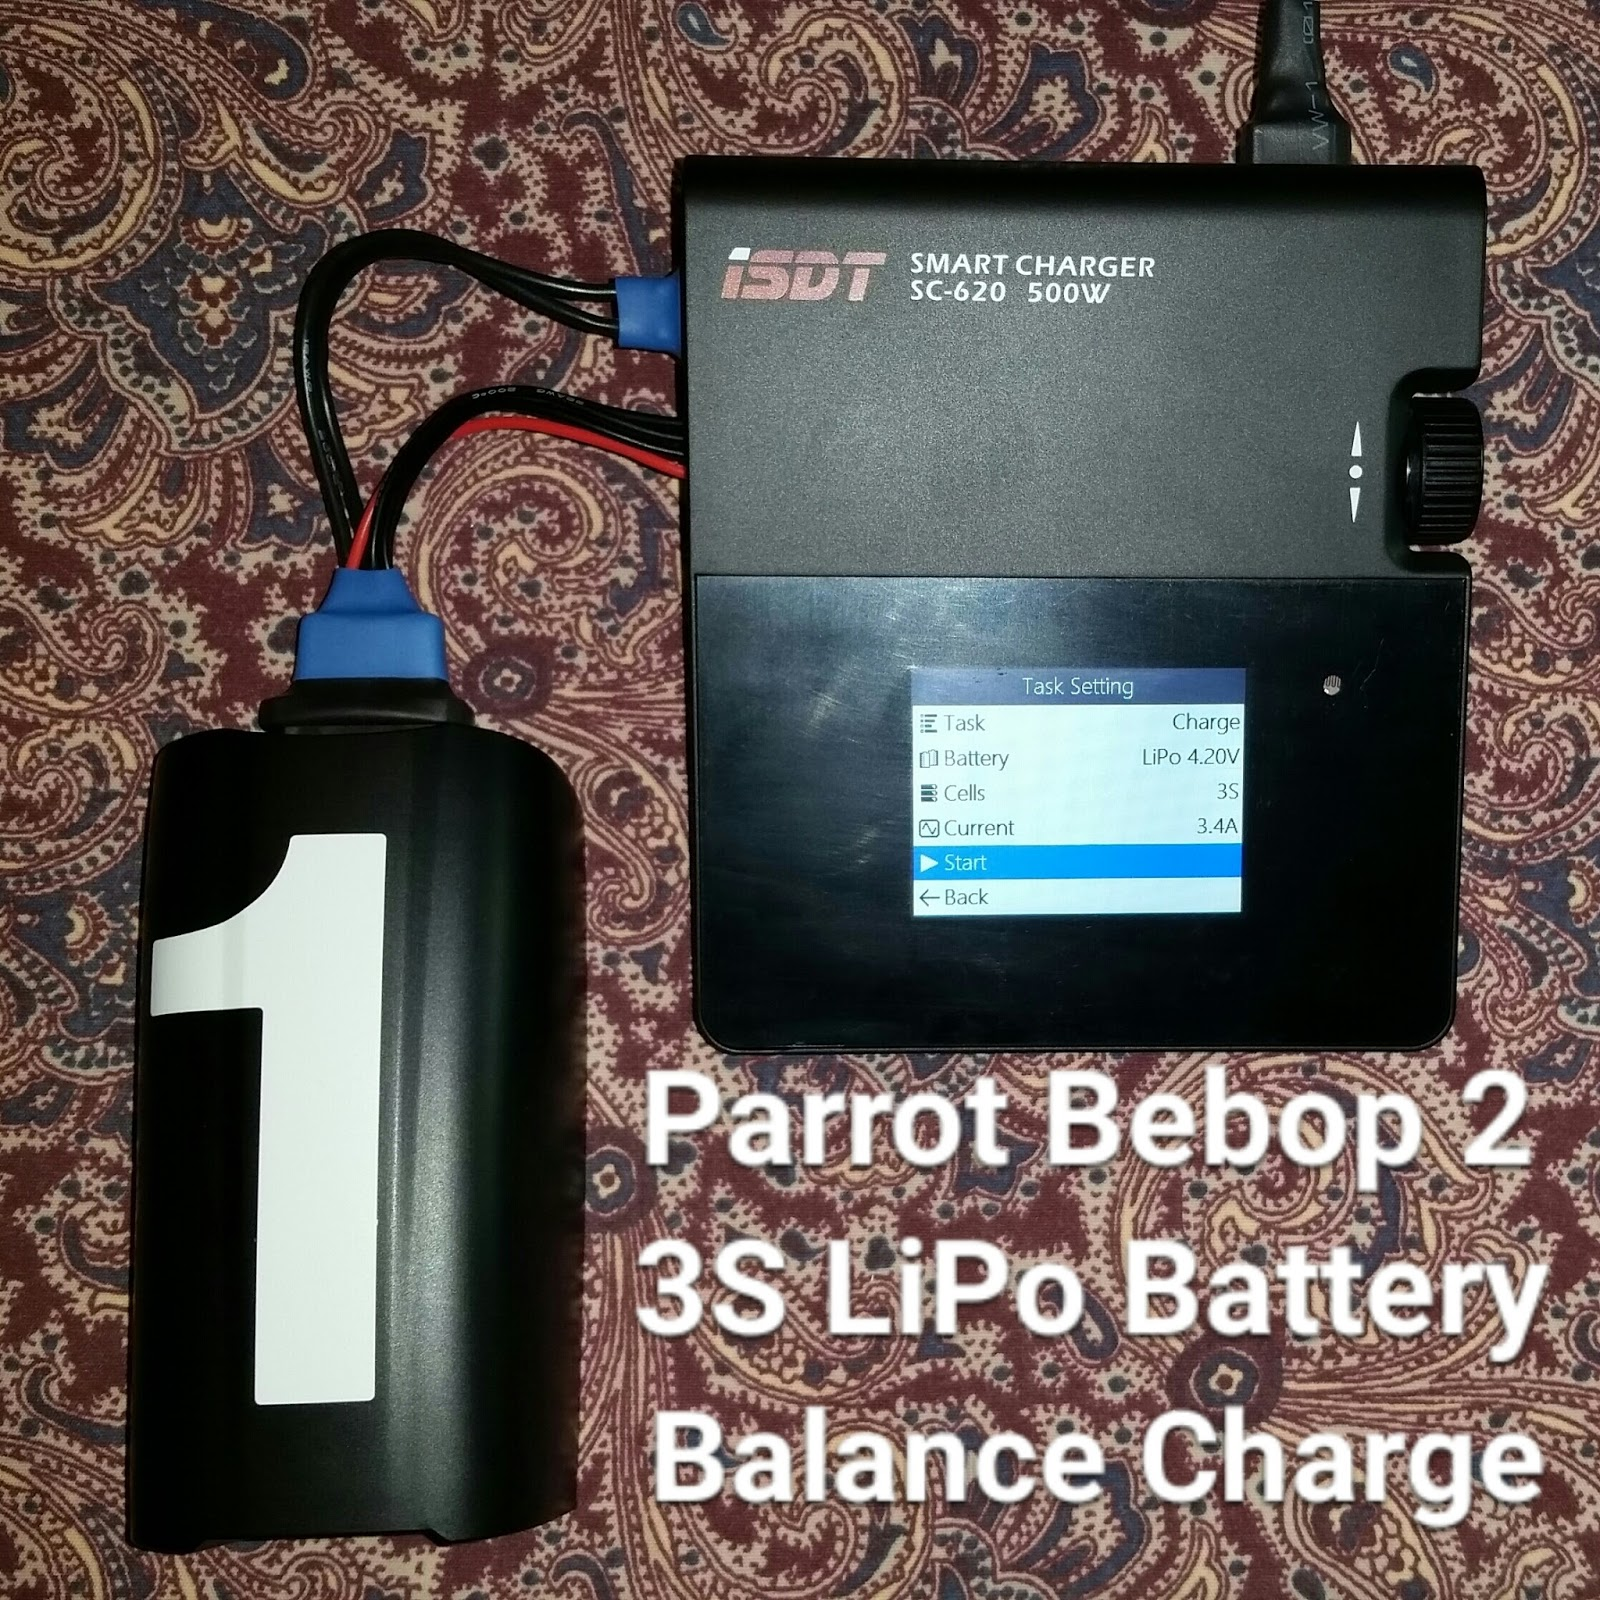 The High Pro Glow Parrot Bebop 2 Battery Charging Protection Adding Voltage Cutoff To A Circuit 3s Lipo Electrical Here Is My Isdt Sc 620 Charger Connected Custom Adapter Cable Shown In Pic Needed Complete Setup